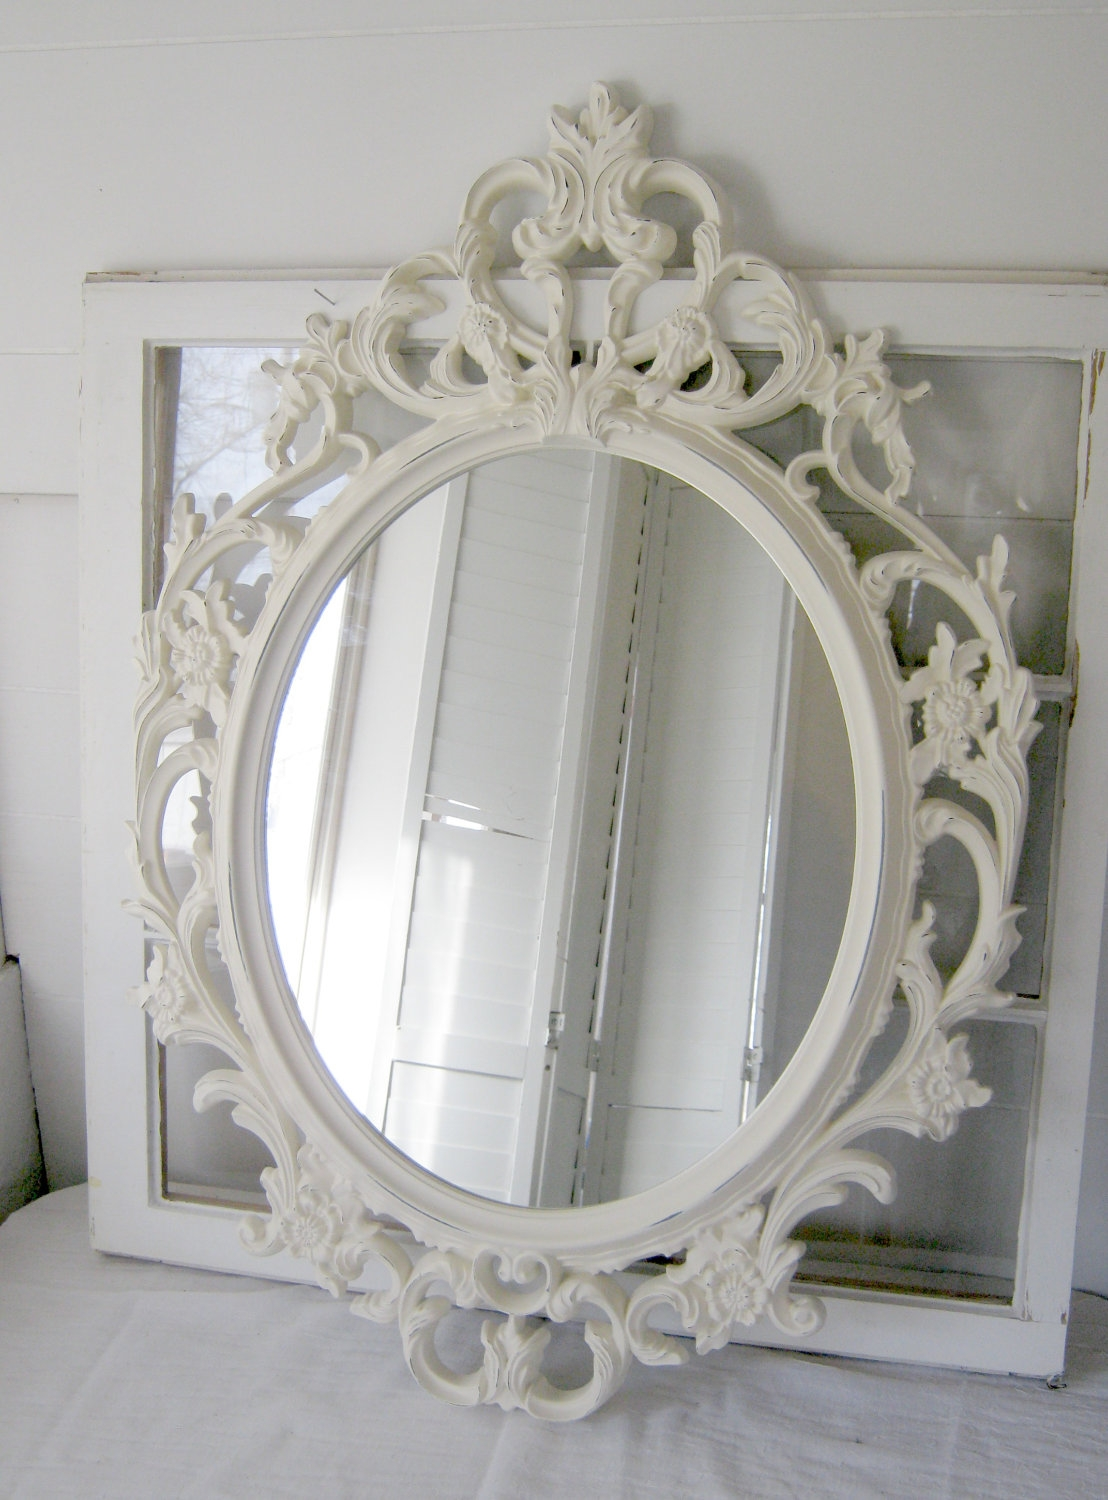 Shab Chic Baroque Oval Mirror Antique White Ornate Mirror Intended For Oval Shabby Chic Mirror (Image 10 of 15)